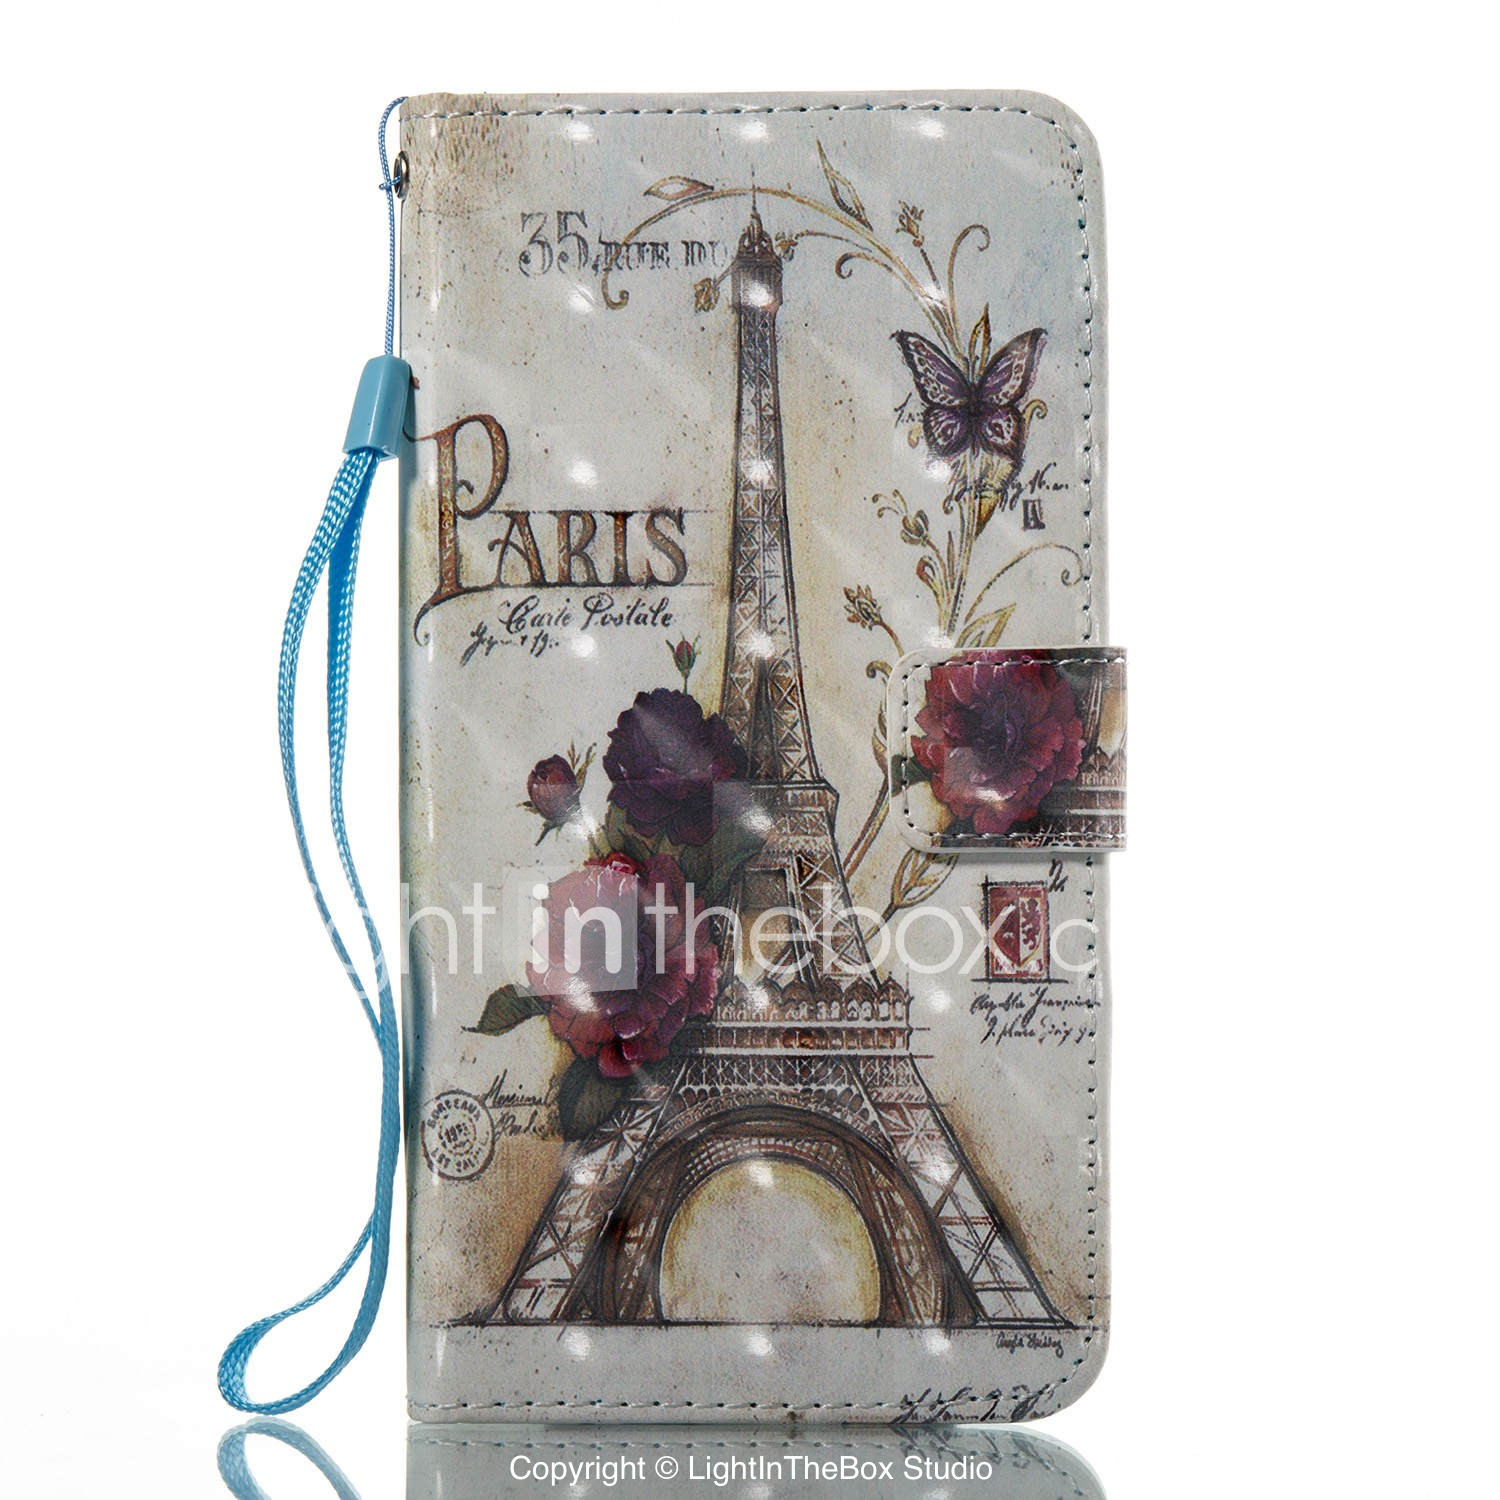 J7 Pas Cher Case For Samsung Galaxy J7 2017 J3 2017 Wallet Card Holder With Stand Full Body Cases Eiffel Tower Hard Pu Leather For J7 2017 J7 2016